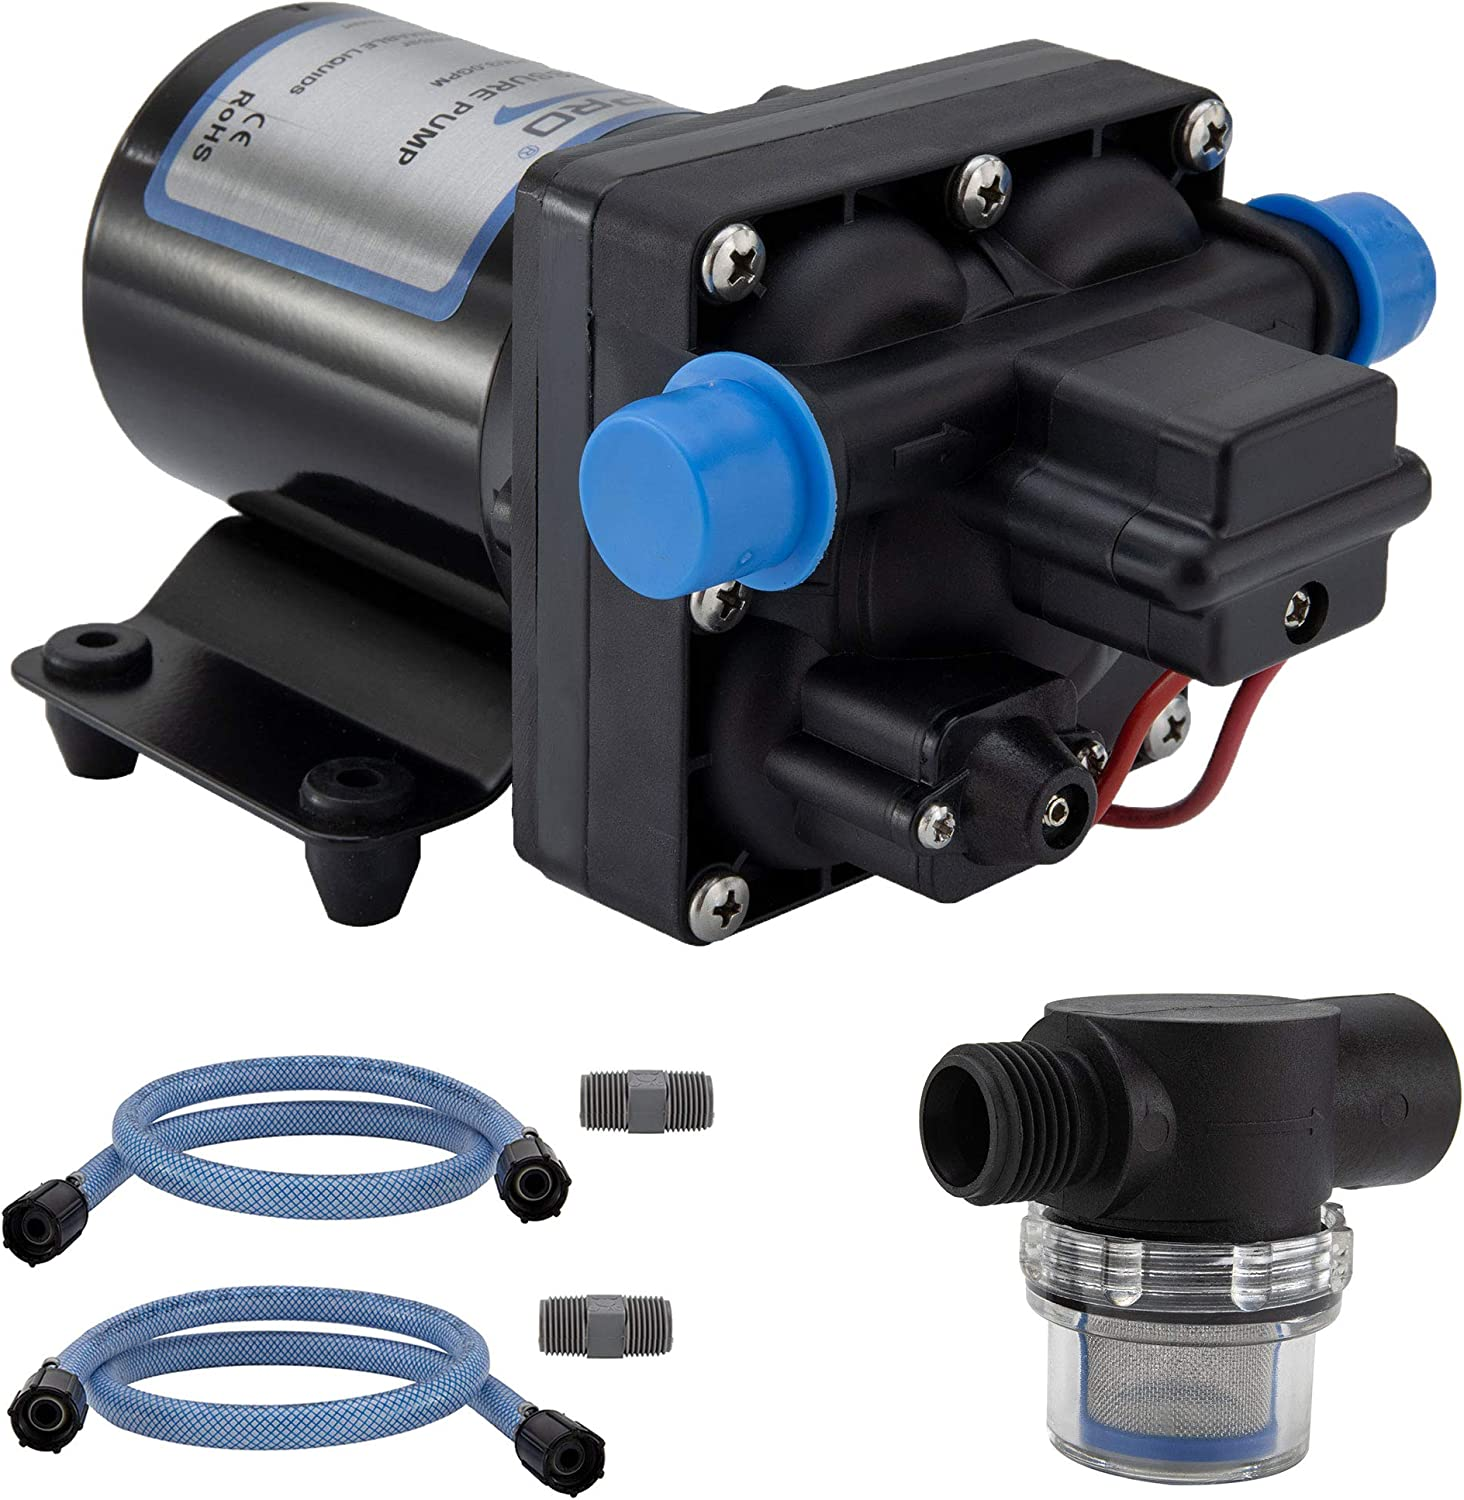 RecPro Max 67% OFF RV Water Pump 12V Pr Electric Sale special price Chamber with 4